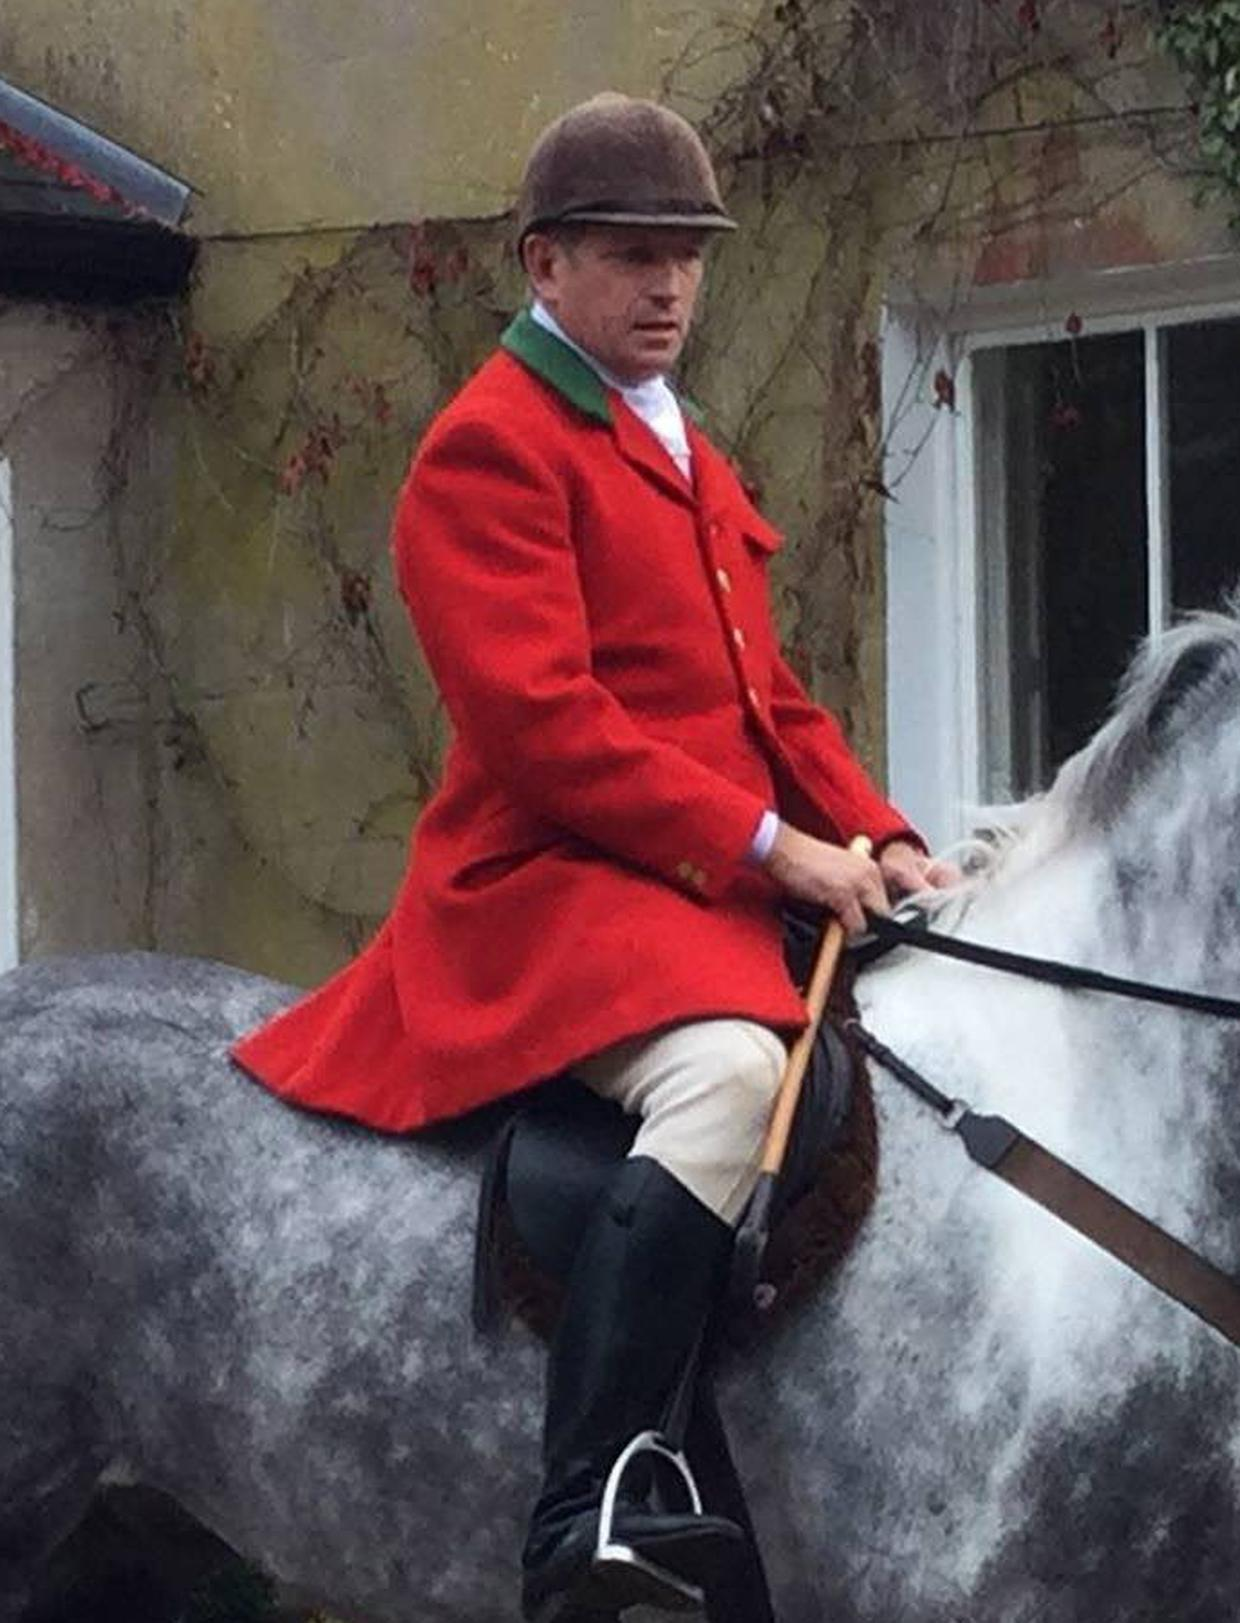 Fox hunt pair charged after 'hounds killed cat and attacked man'